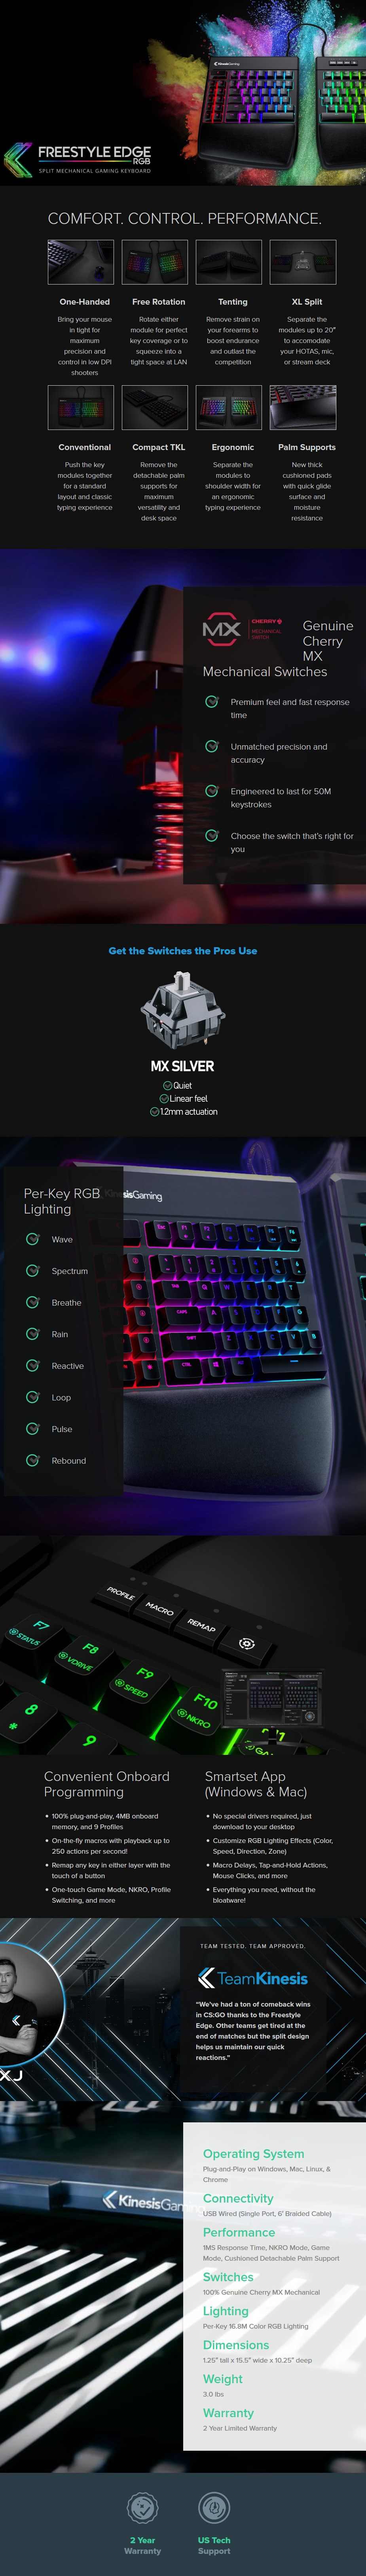 Kinesis Gaming Freestyle Edge RGB Mechanical Gaming Keyboard - Cherry MX Silver - Overview 1